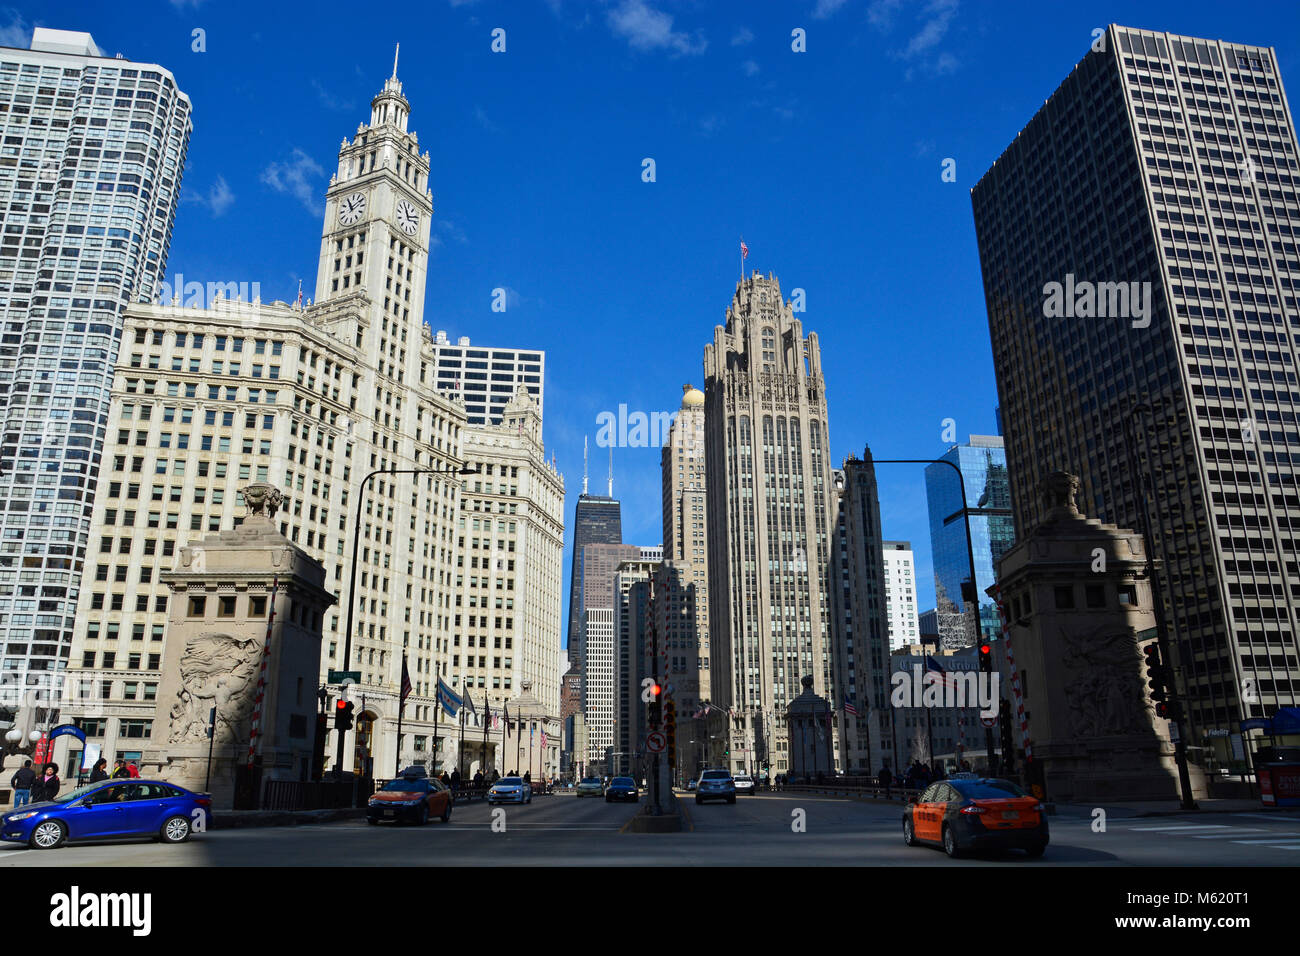 The view north up the iconic Magnificent Mile shopping district from the Michigan Avenue bridge in Chicago. - Stock Image